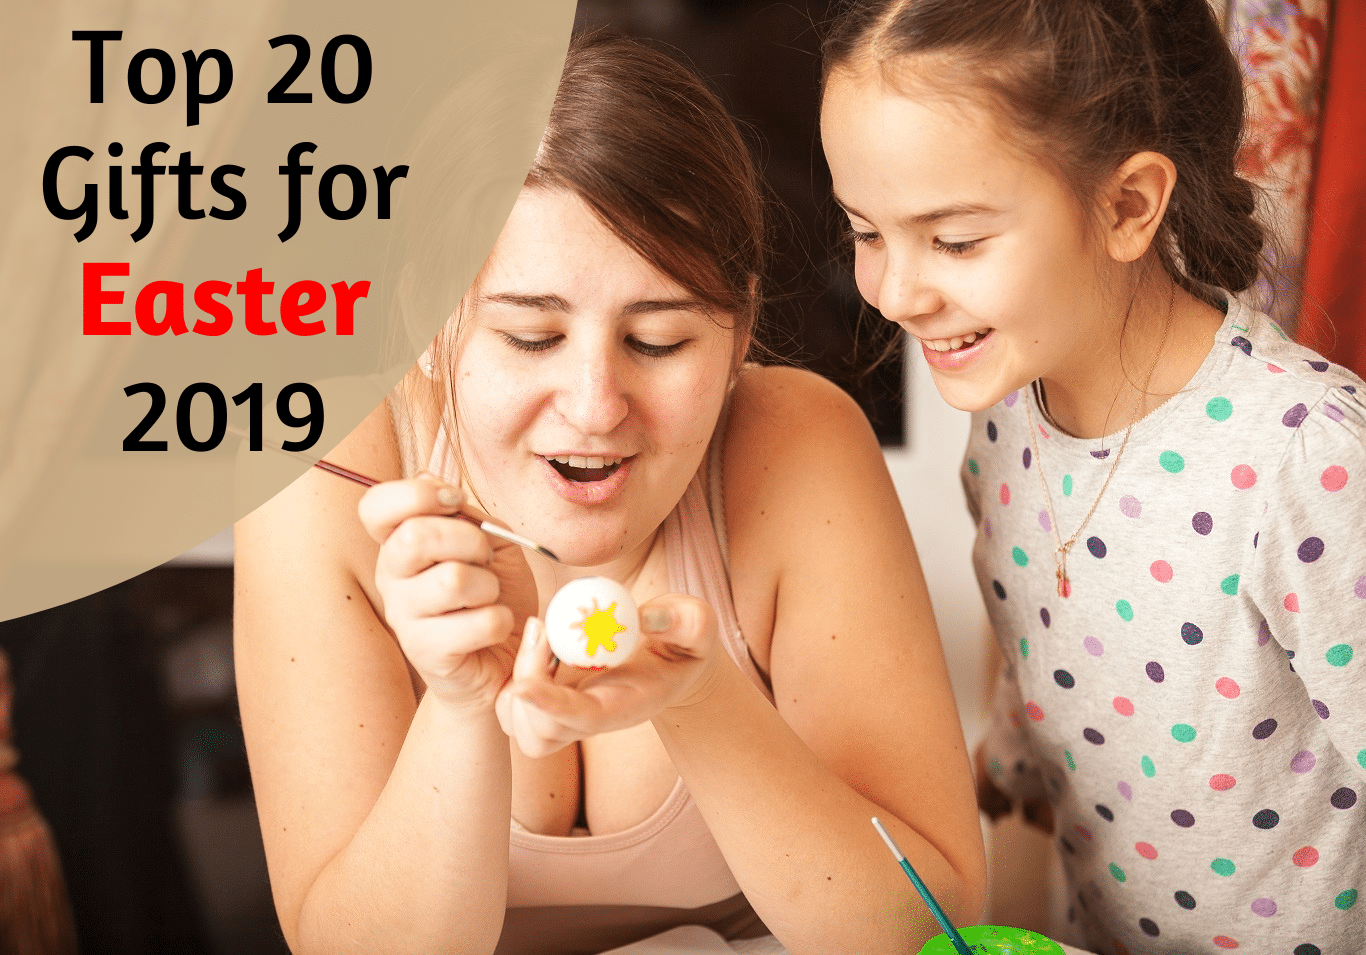 Top 20 Gifts for Easter 2019